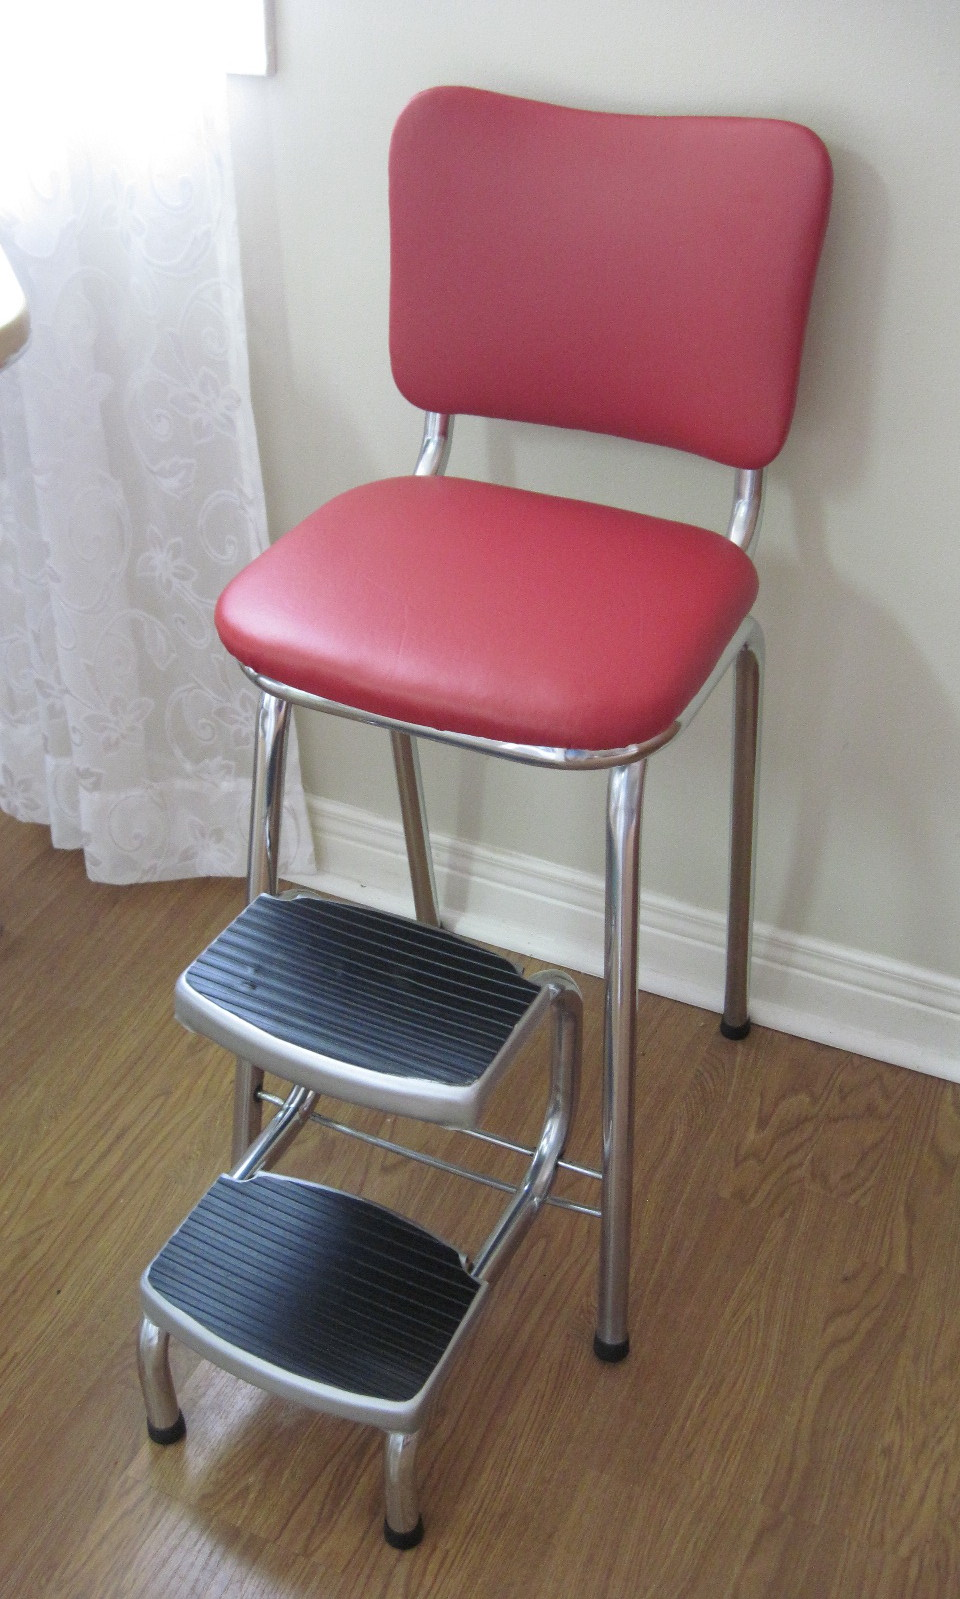 Vintage Red Vinyl Mid Century Chrome Step Stool Fabfindsblog